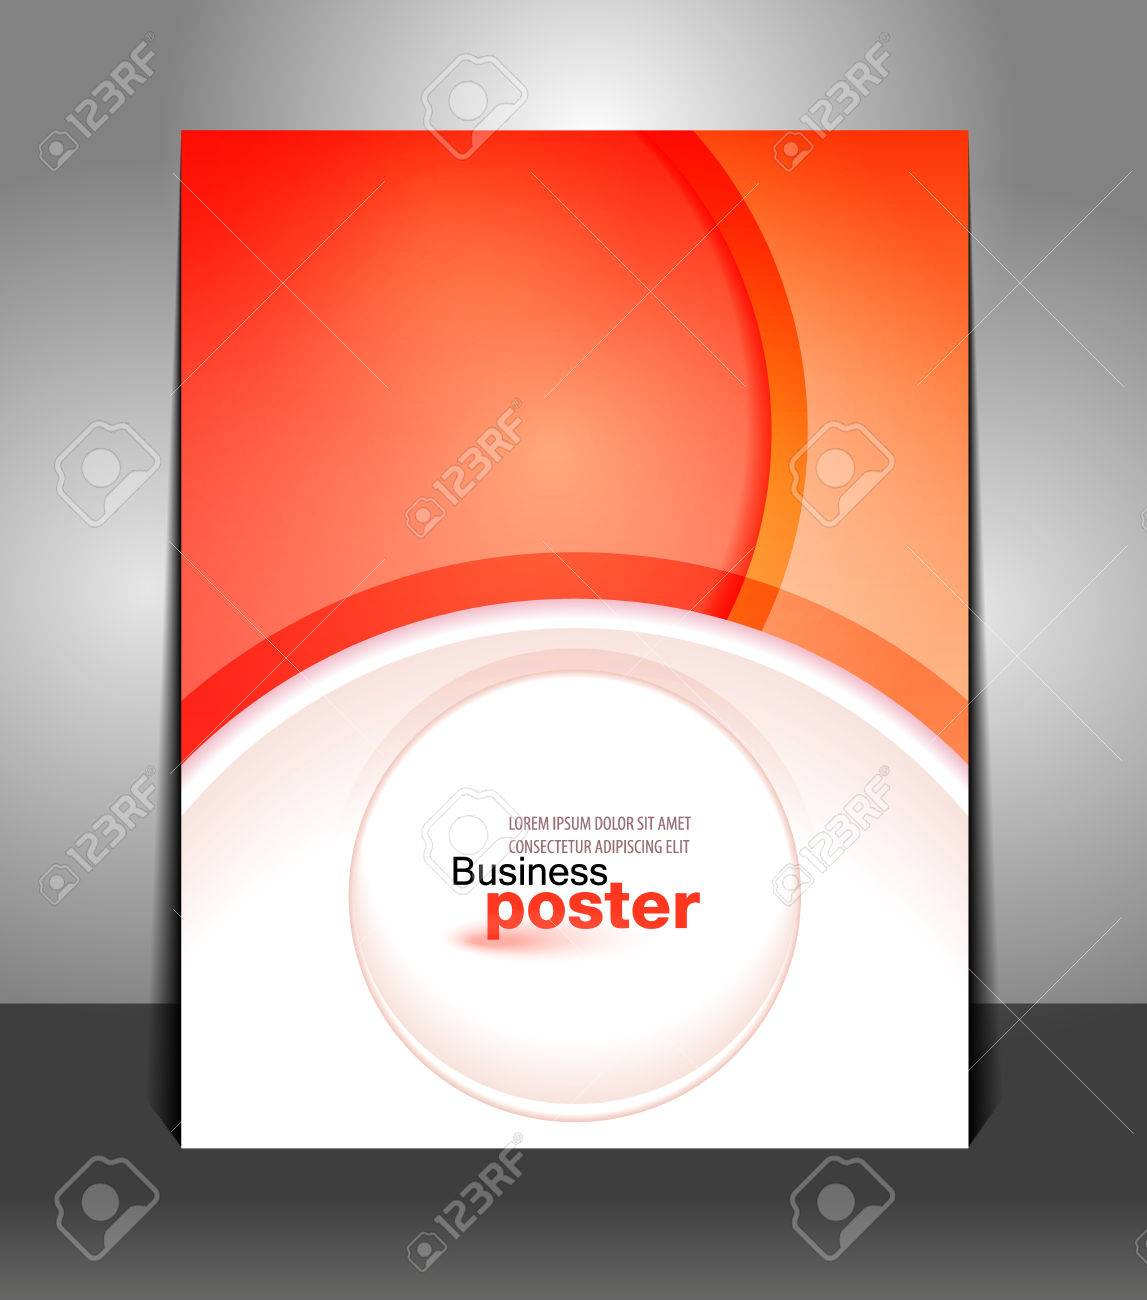 Poster design layout templates - Stylish Presentation Of Business Poster Flyer Design Content Background Design Layout Template Stock Vector